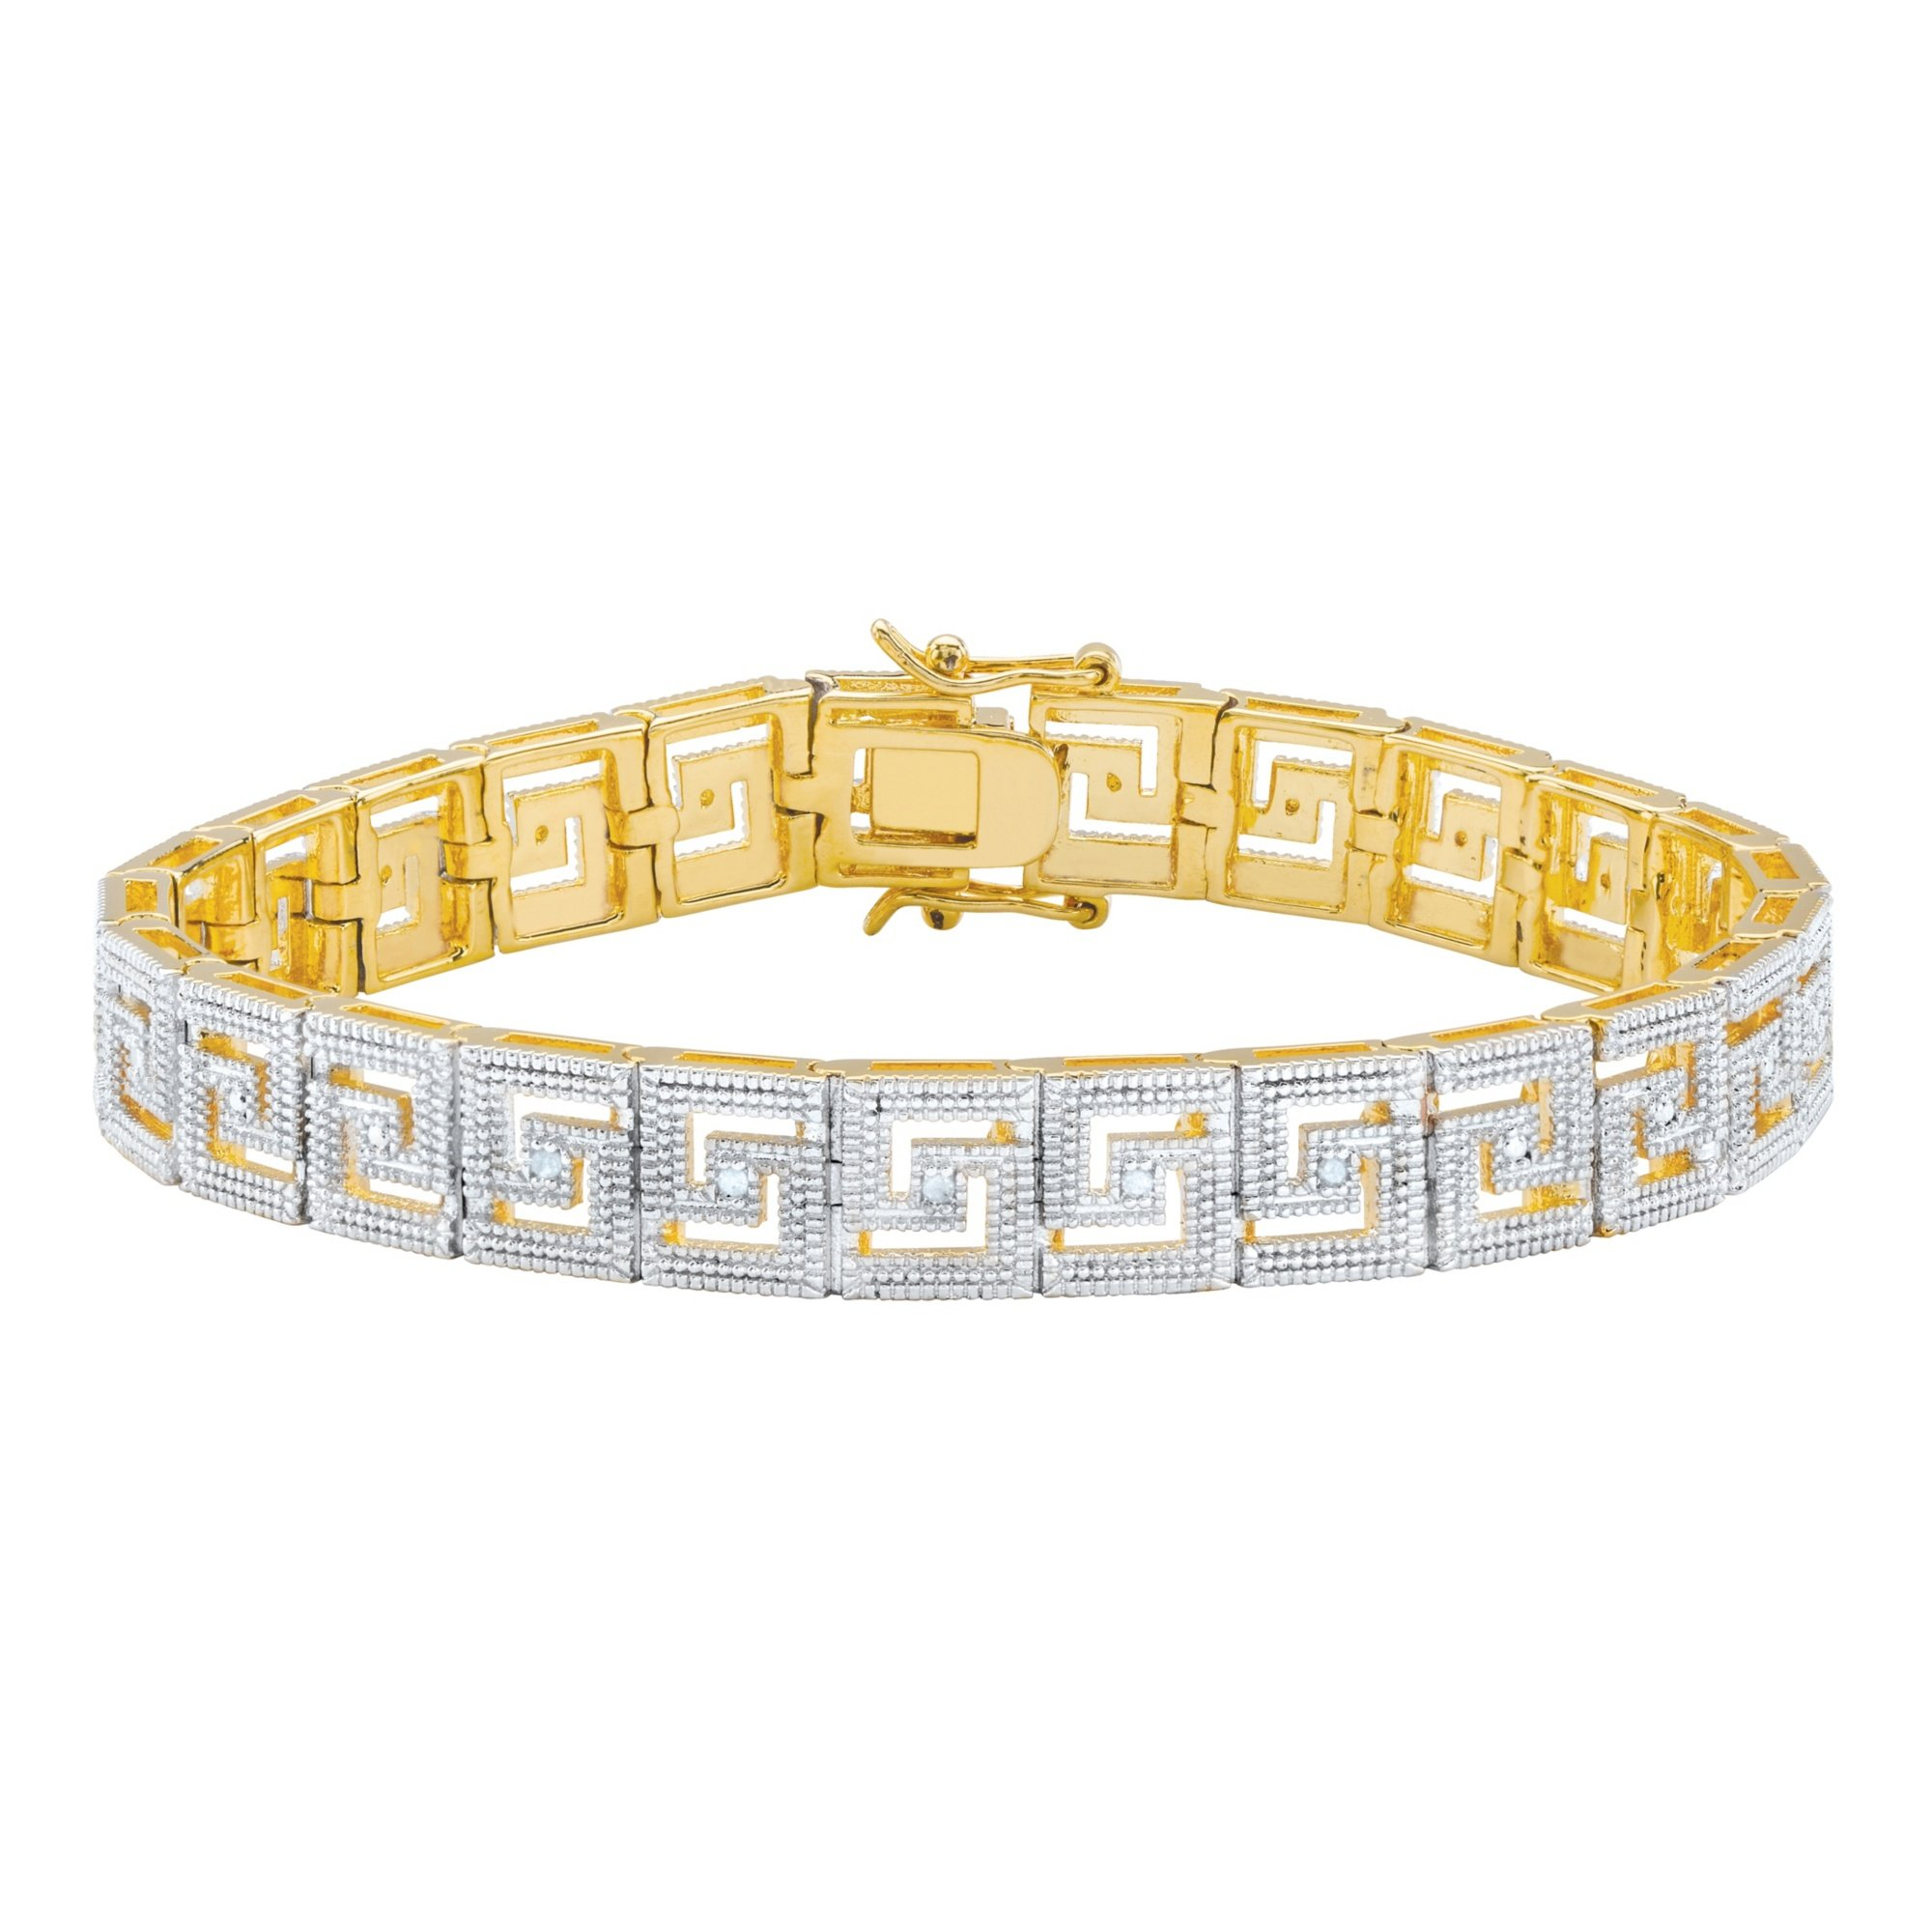 White Diamond Accent 14k Gold-Plated Two-Tone Beaded Pave-Style Greek Key Bracelet 7.5''